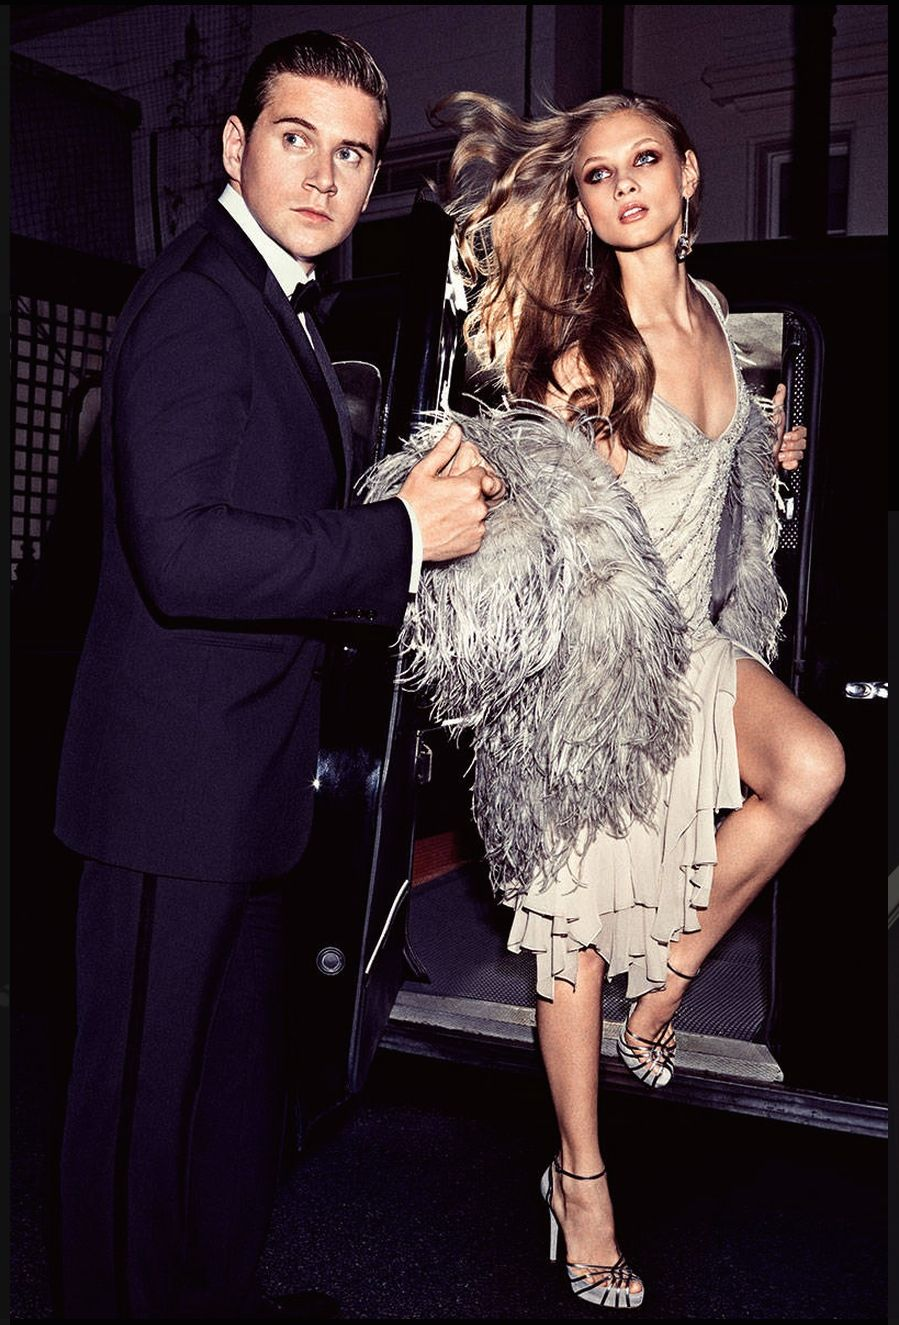 In Harper's Bazaar this month, Downton Abbey actor Allen Leech wears Ralph Lauren Purple Label and Anna Selezneva wears Look 18 from the Fall 2014 Ralph Lauren Collection, which is inspired by architectural shapes in soft, shimmering hues.